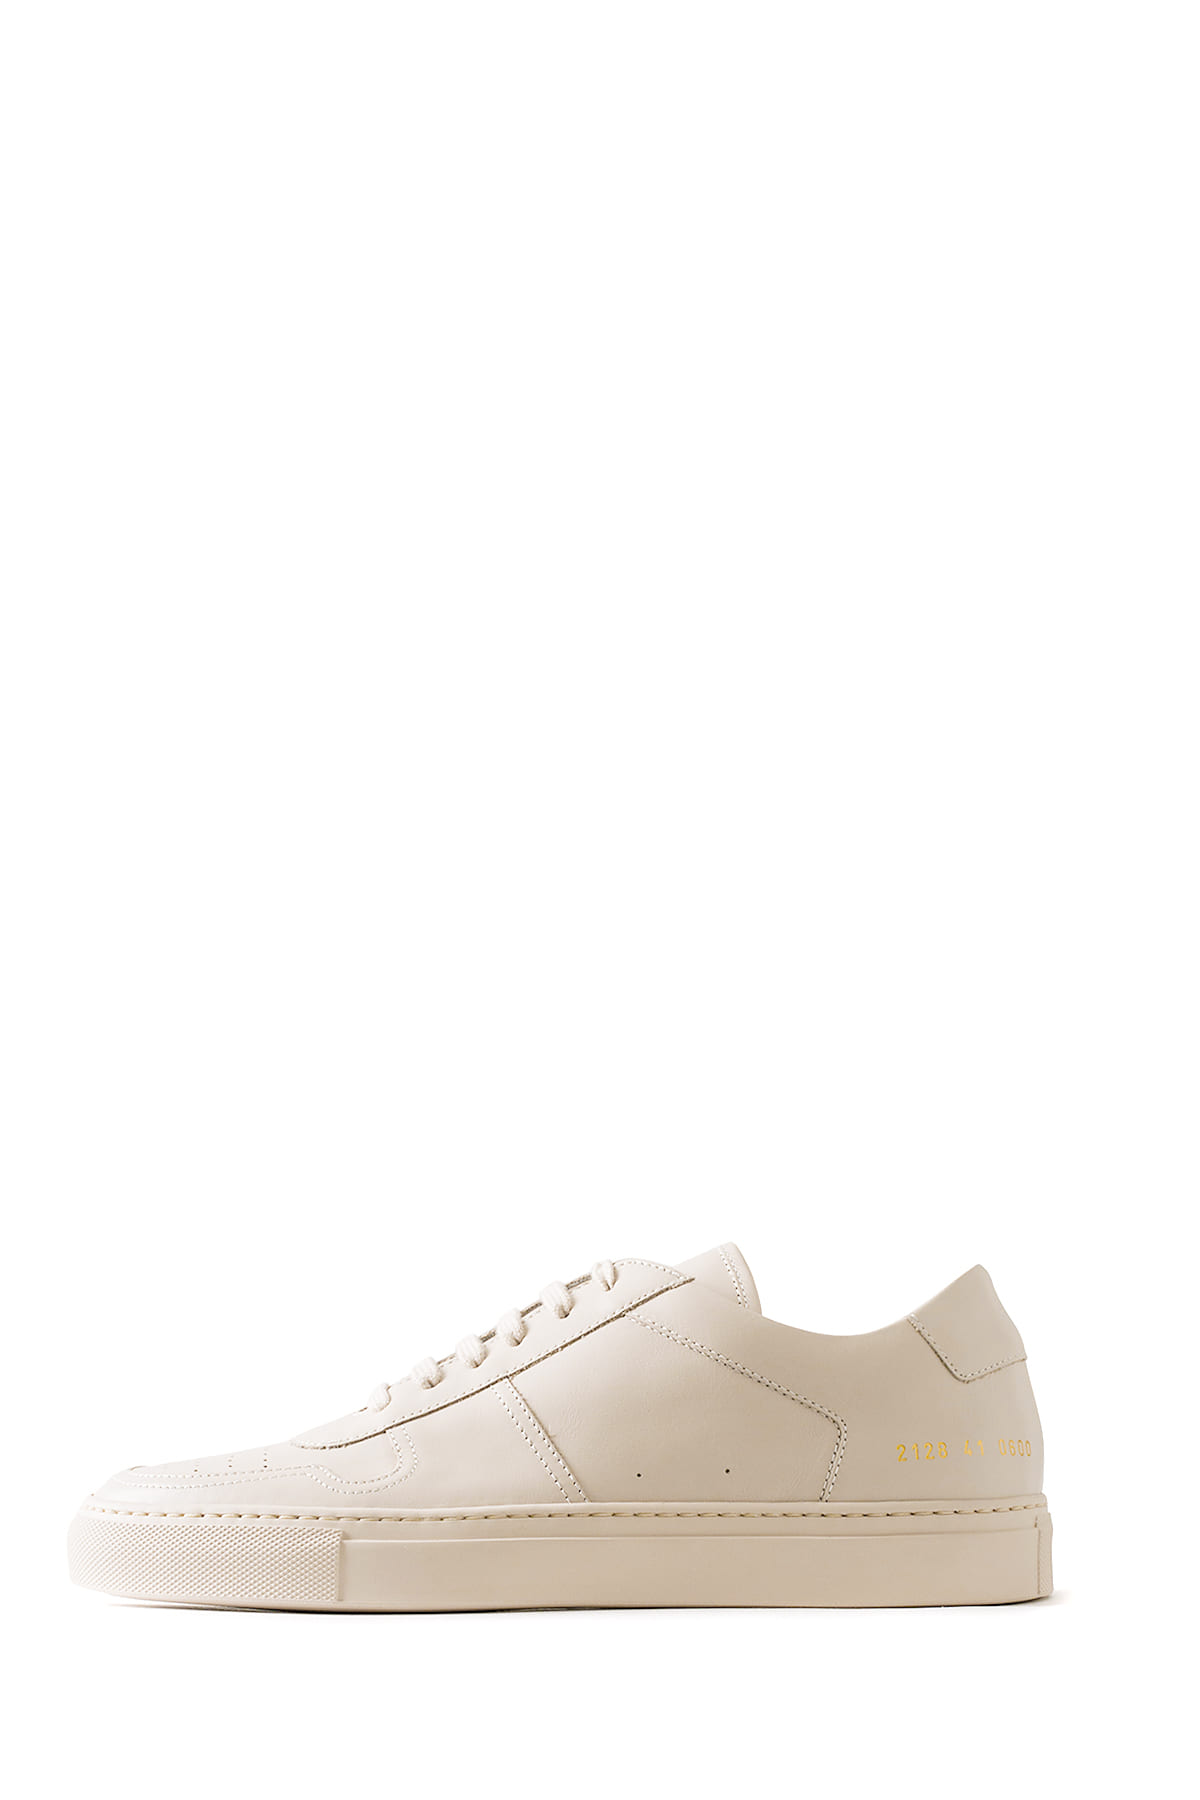 Common Projects : Bball Low 2128 (Nude)